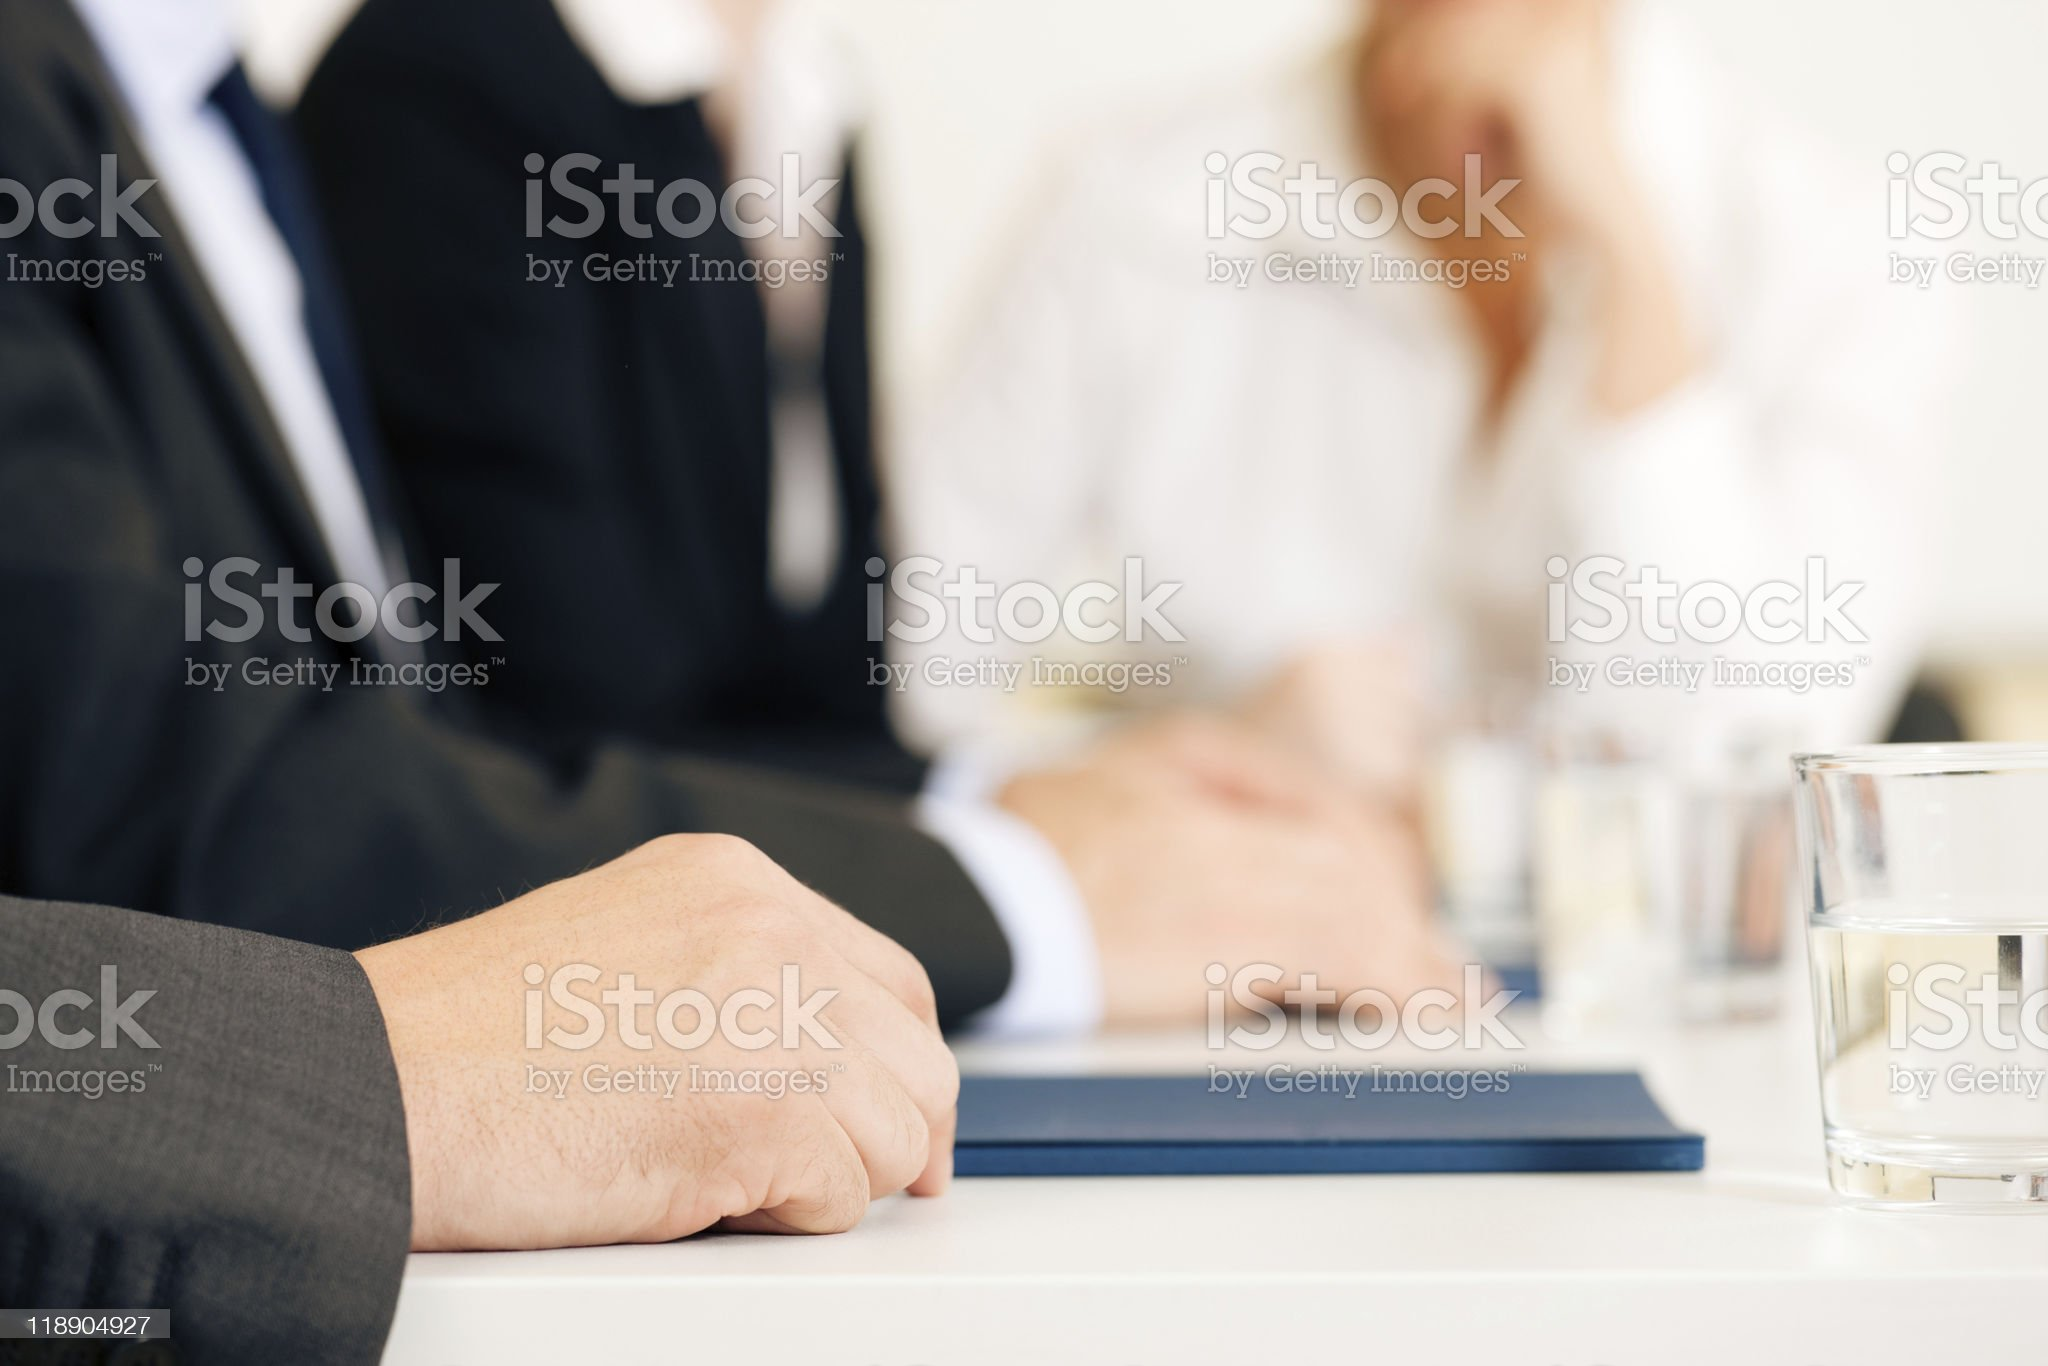 Important men deciding together what's better for their jobs royalty-free stock photo